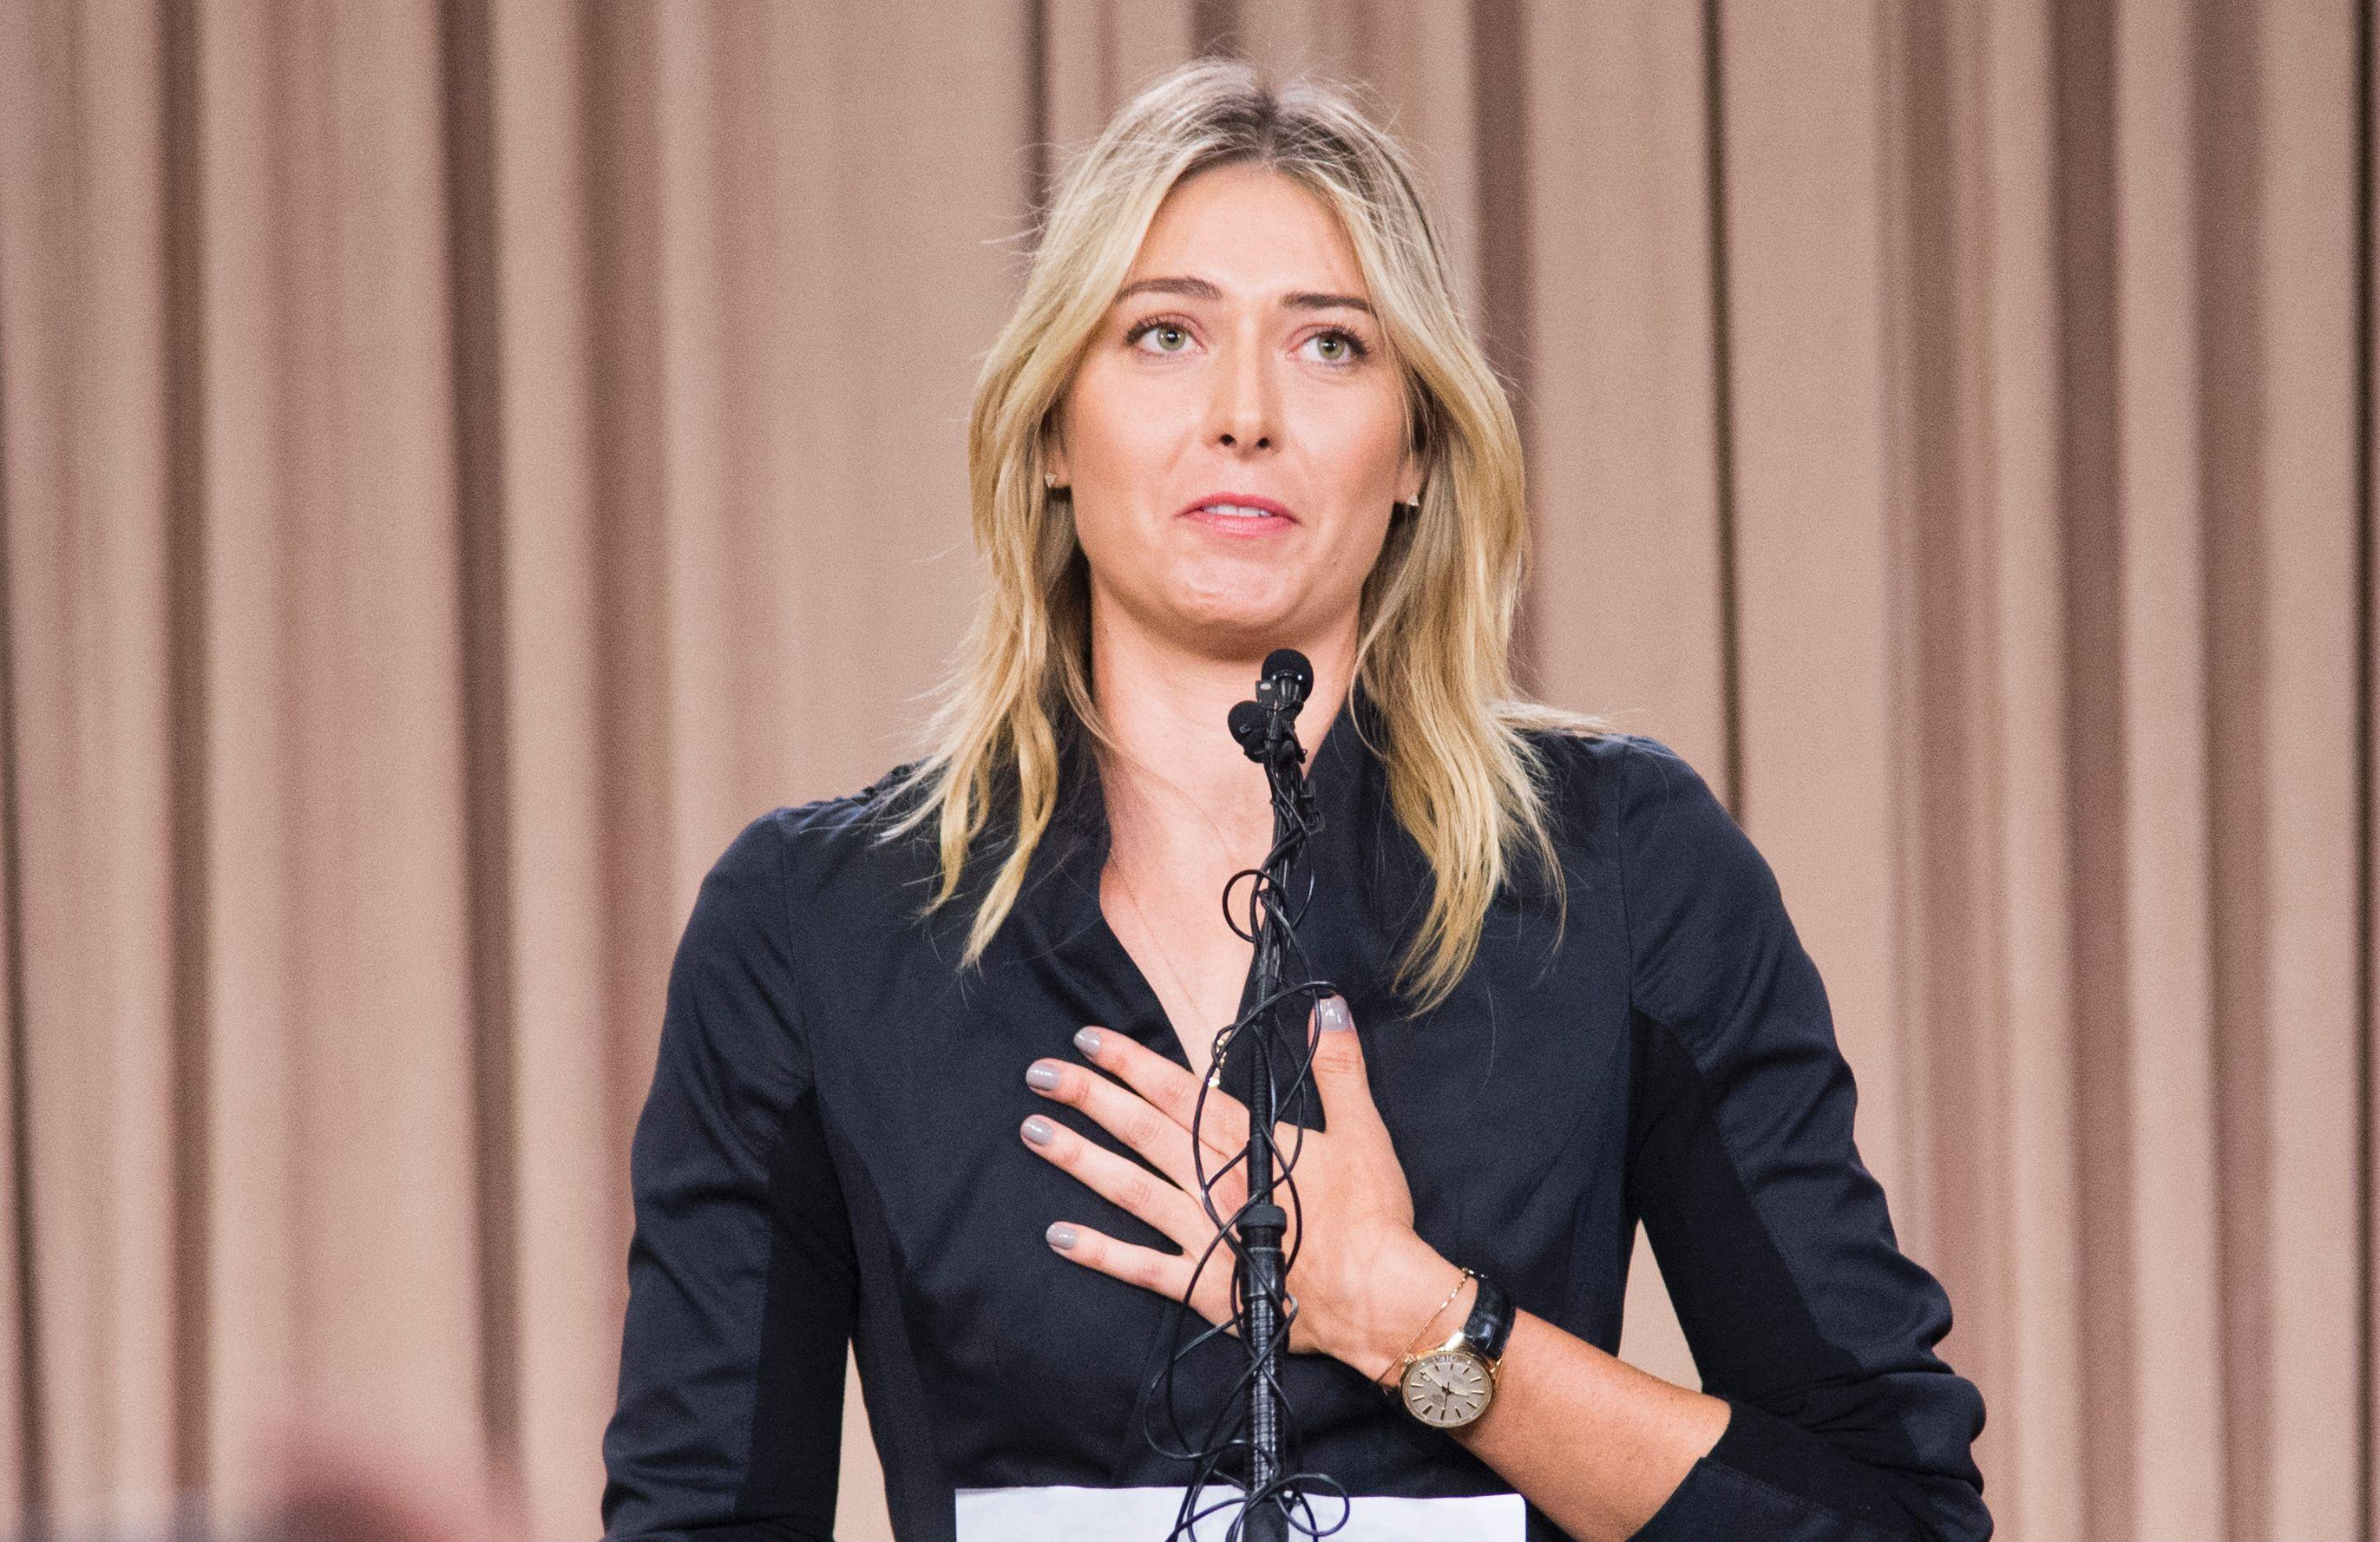 Maria Sharapova was banned for 15 months after testing positive for Meldonium in 2016